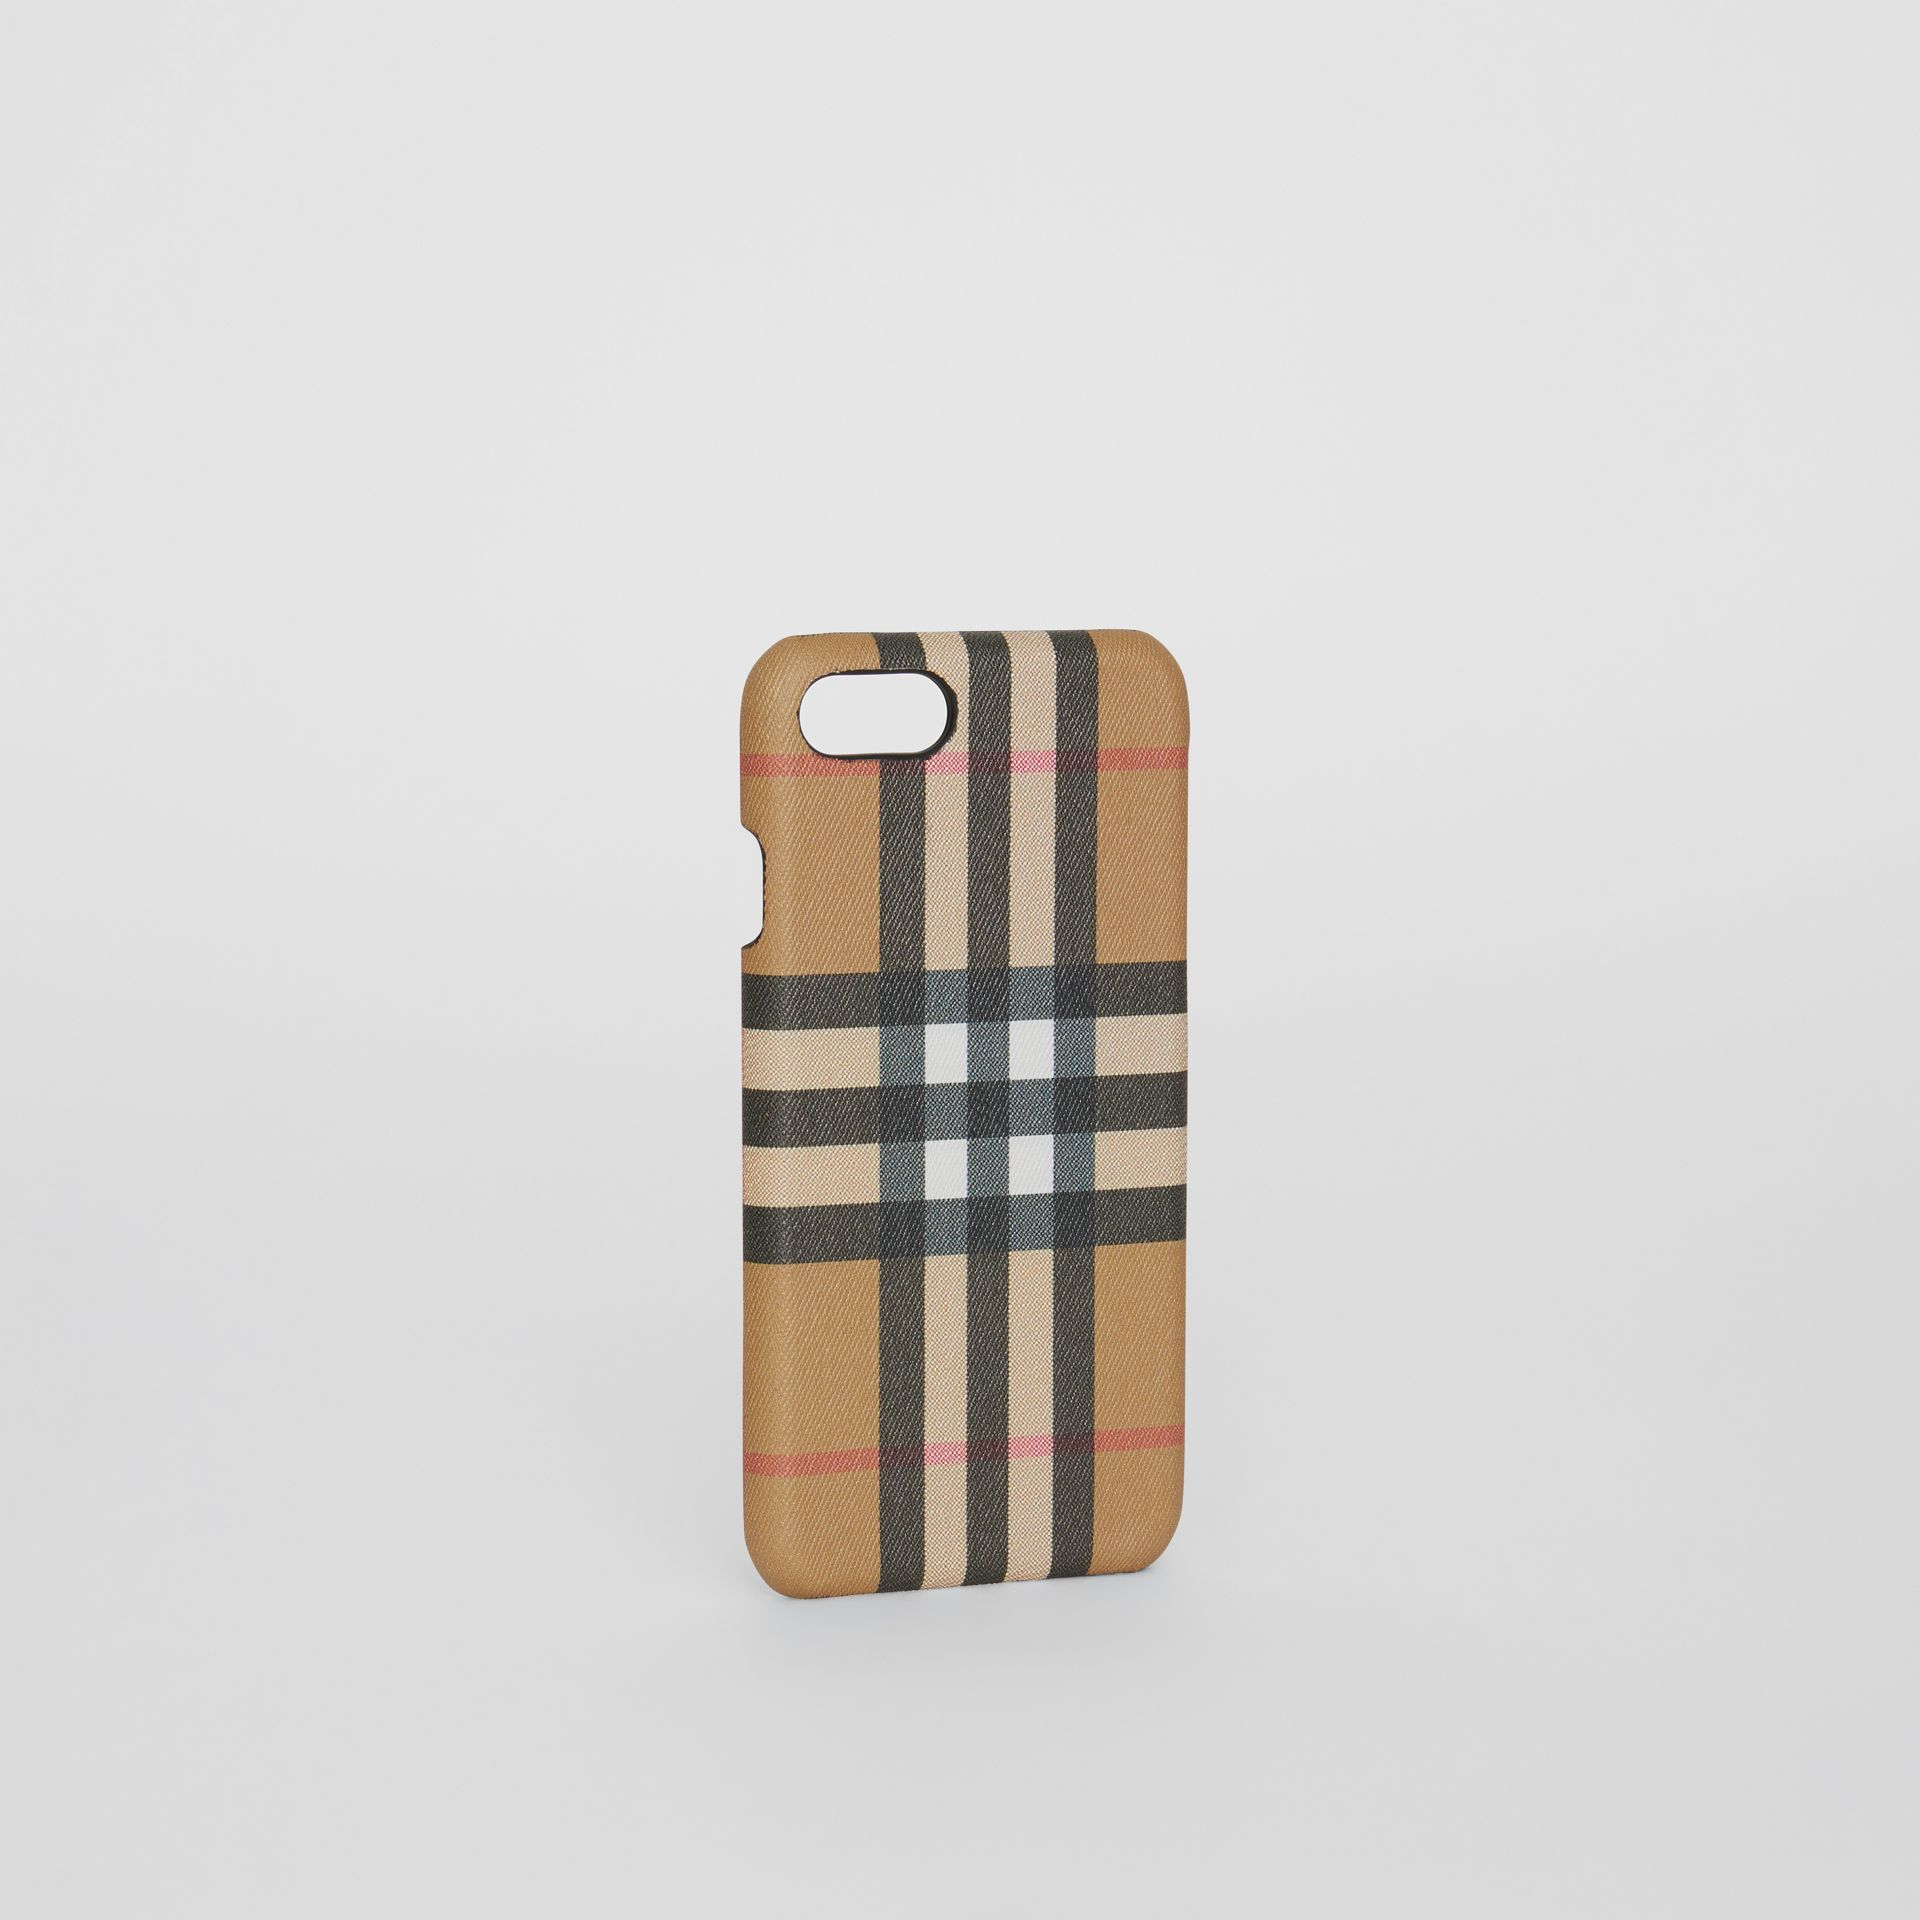 Custodia per iPhone 8 in pelle e motivo Vintage check (Nero) | Burberry - immagine della galleria 3